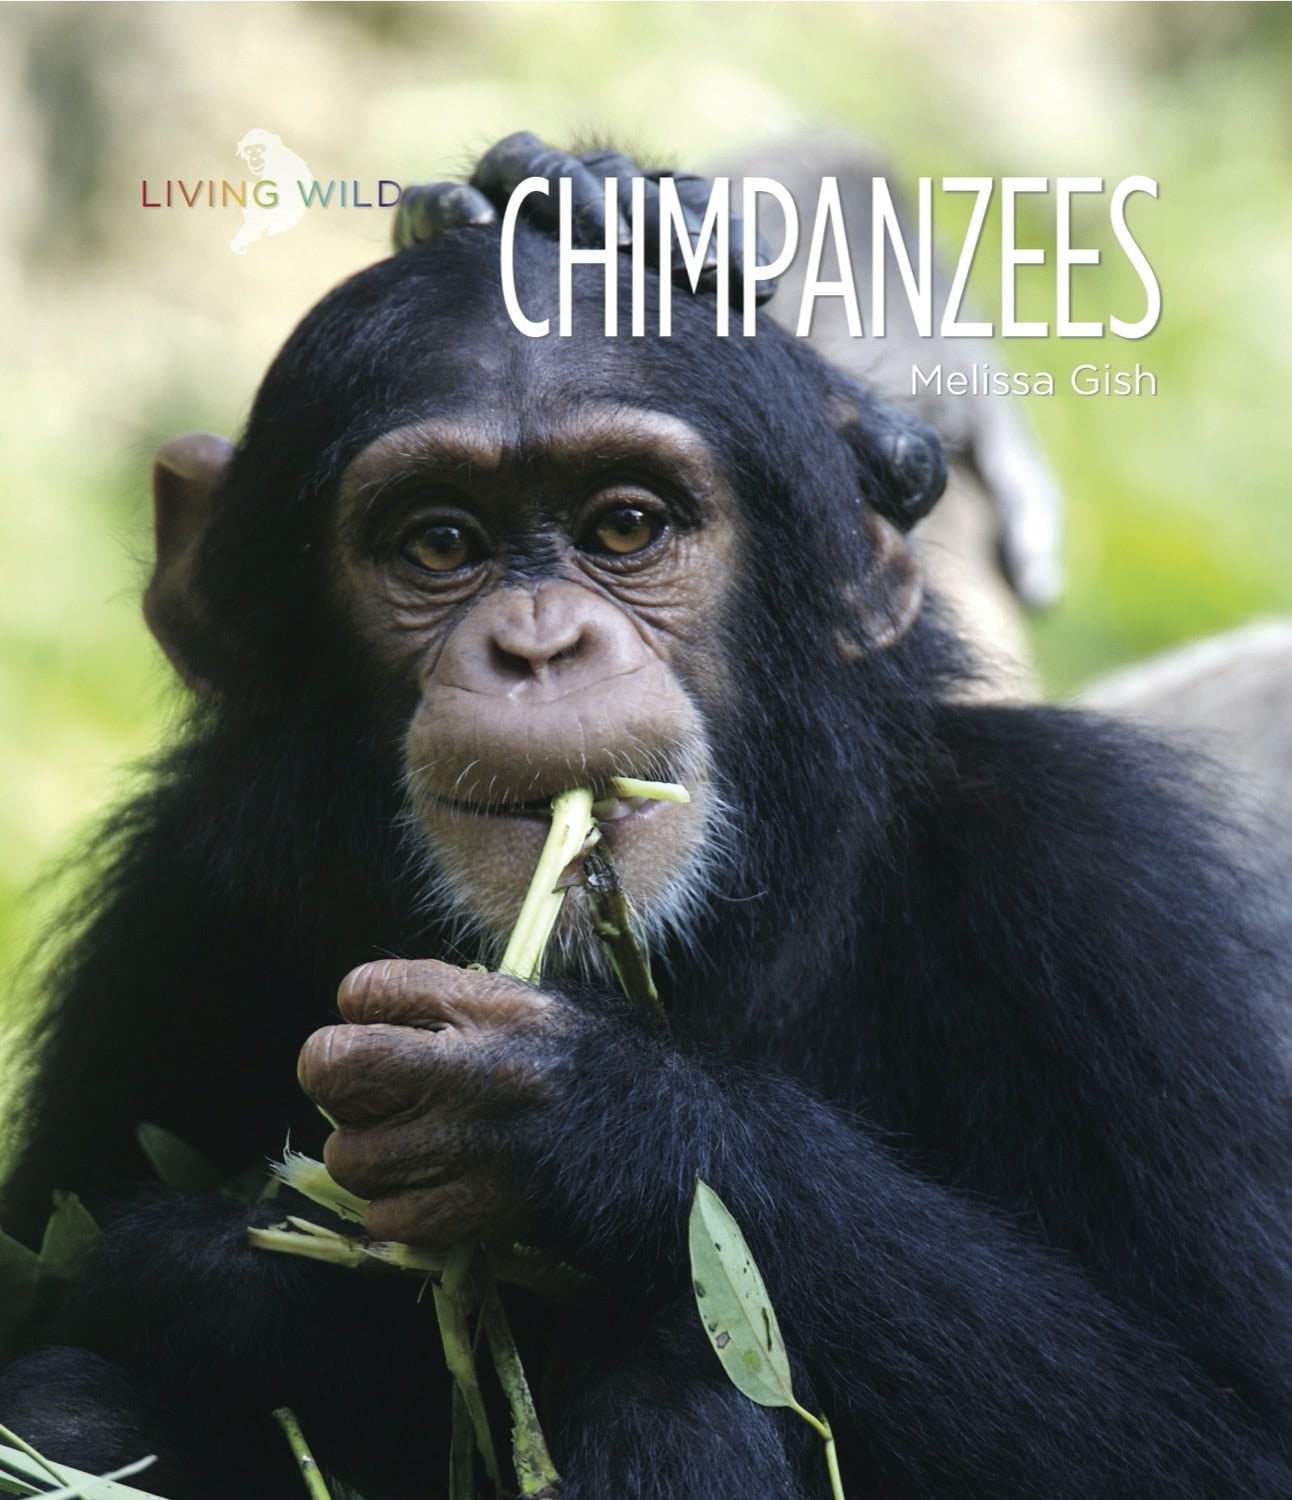 Living Wild: Chimpanzees